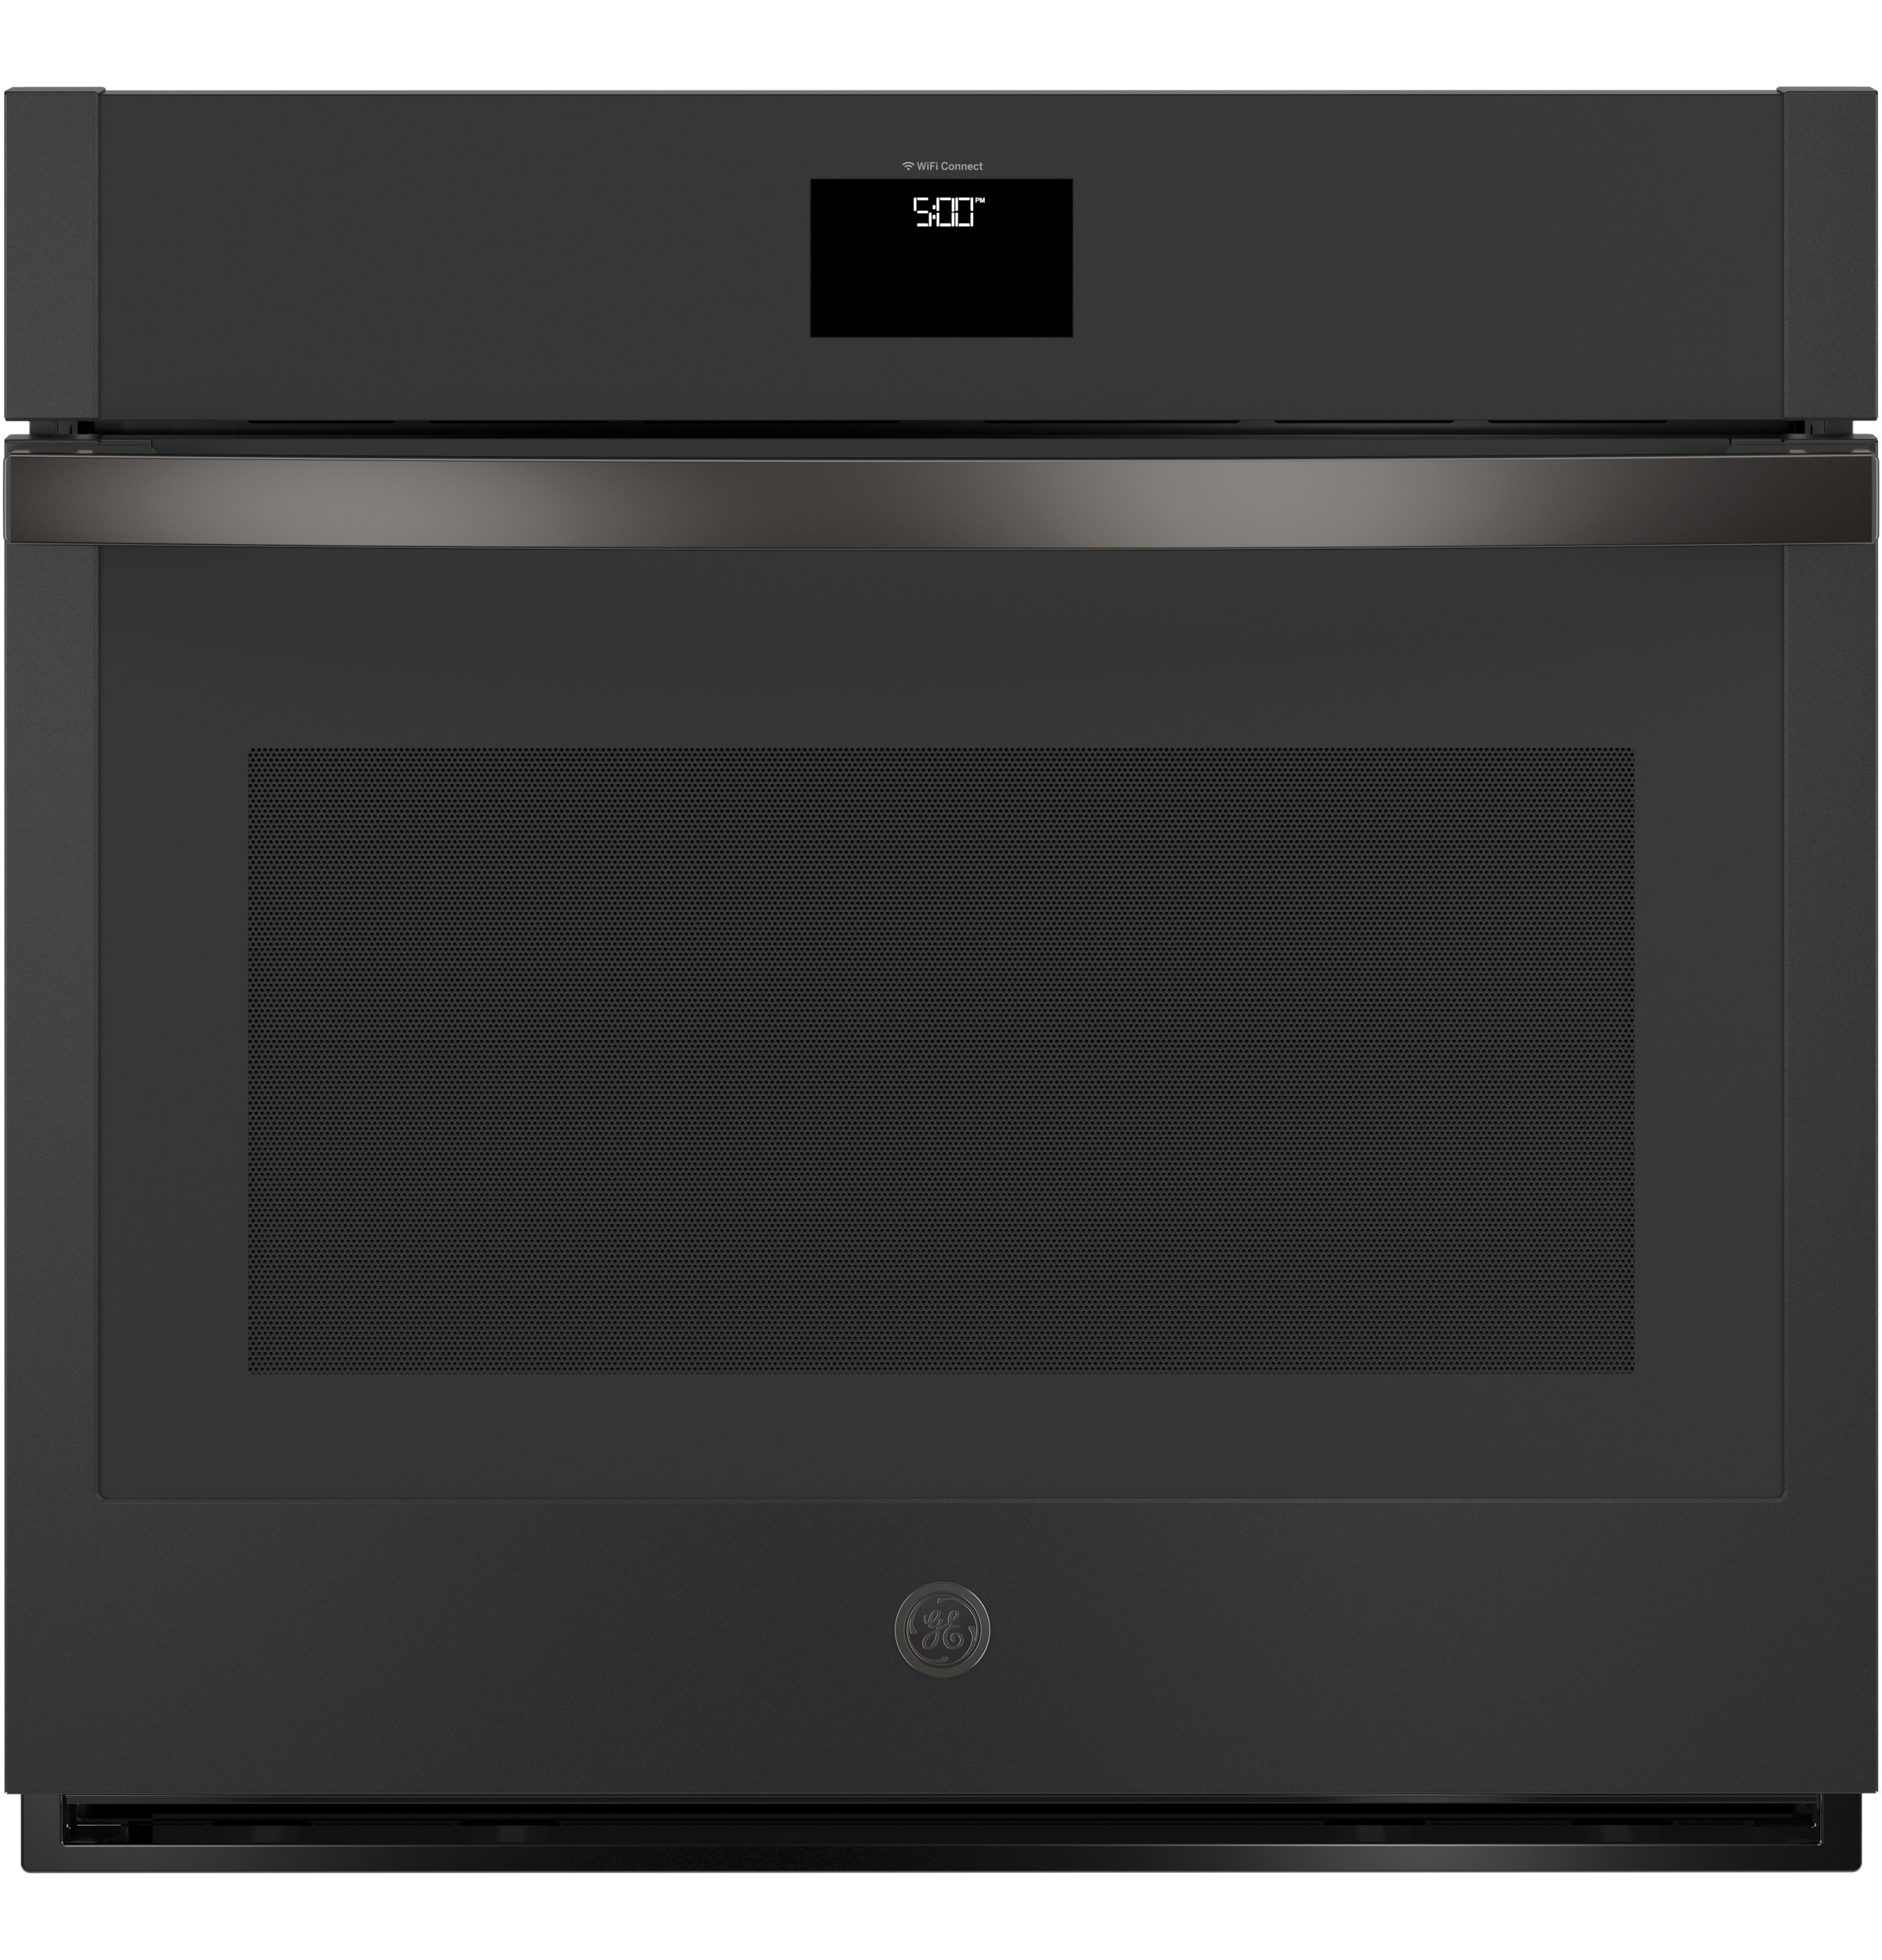 "Model: JTS5000FNDS | GE GE® 30"" Smart Built-In Self-Clean Convection Single Wall Oven with Never Scrub Racks"